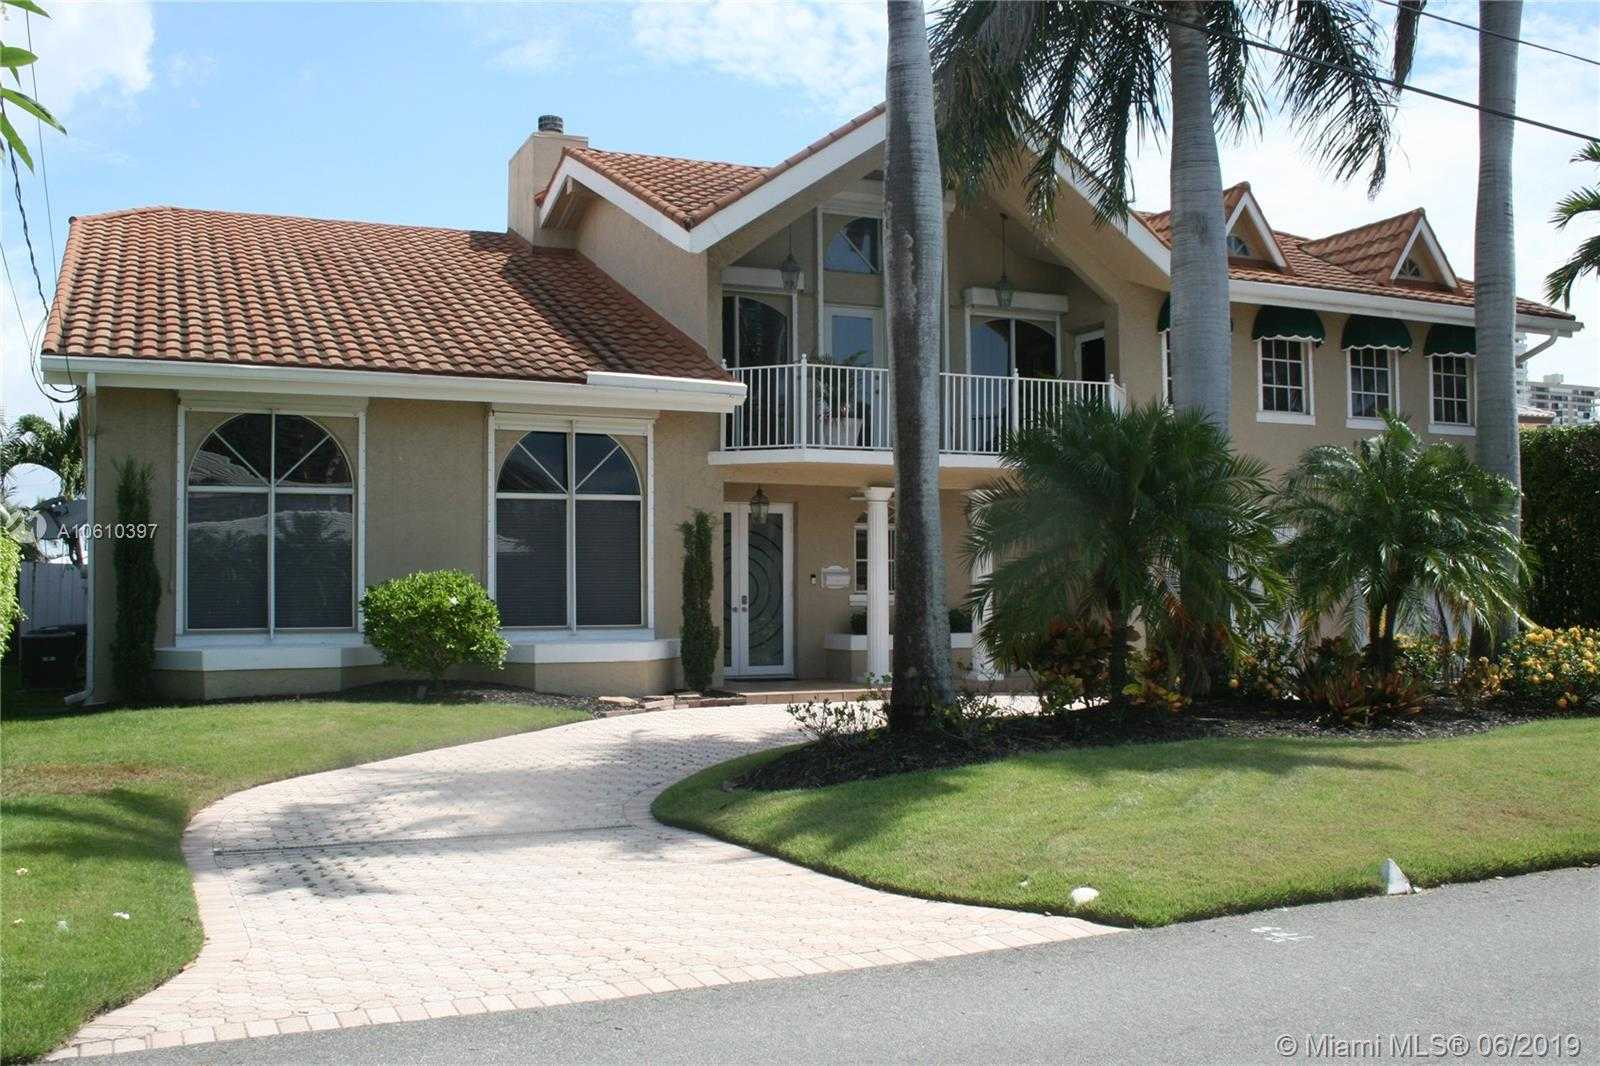 $1,389,000 - 4Br/5Ba -  for Sale in Bermuda-riviera, Fort Lauderdale